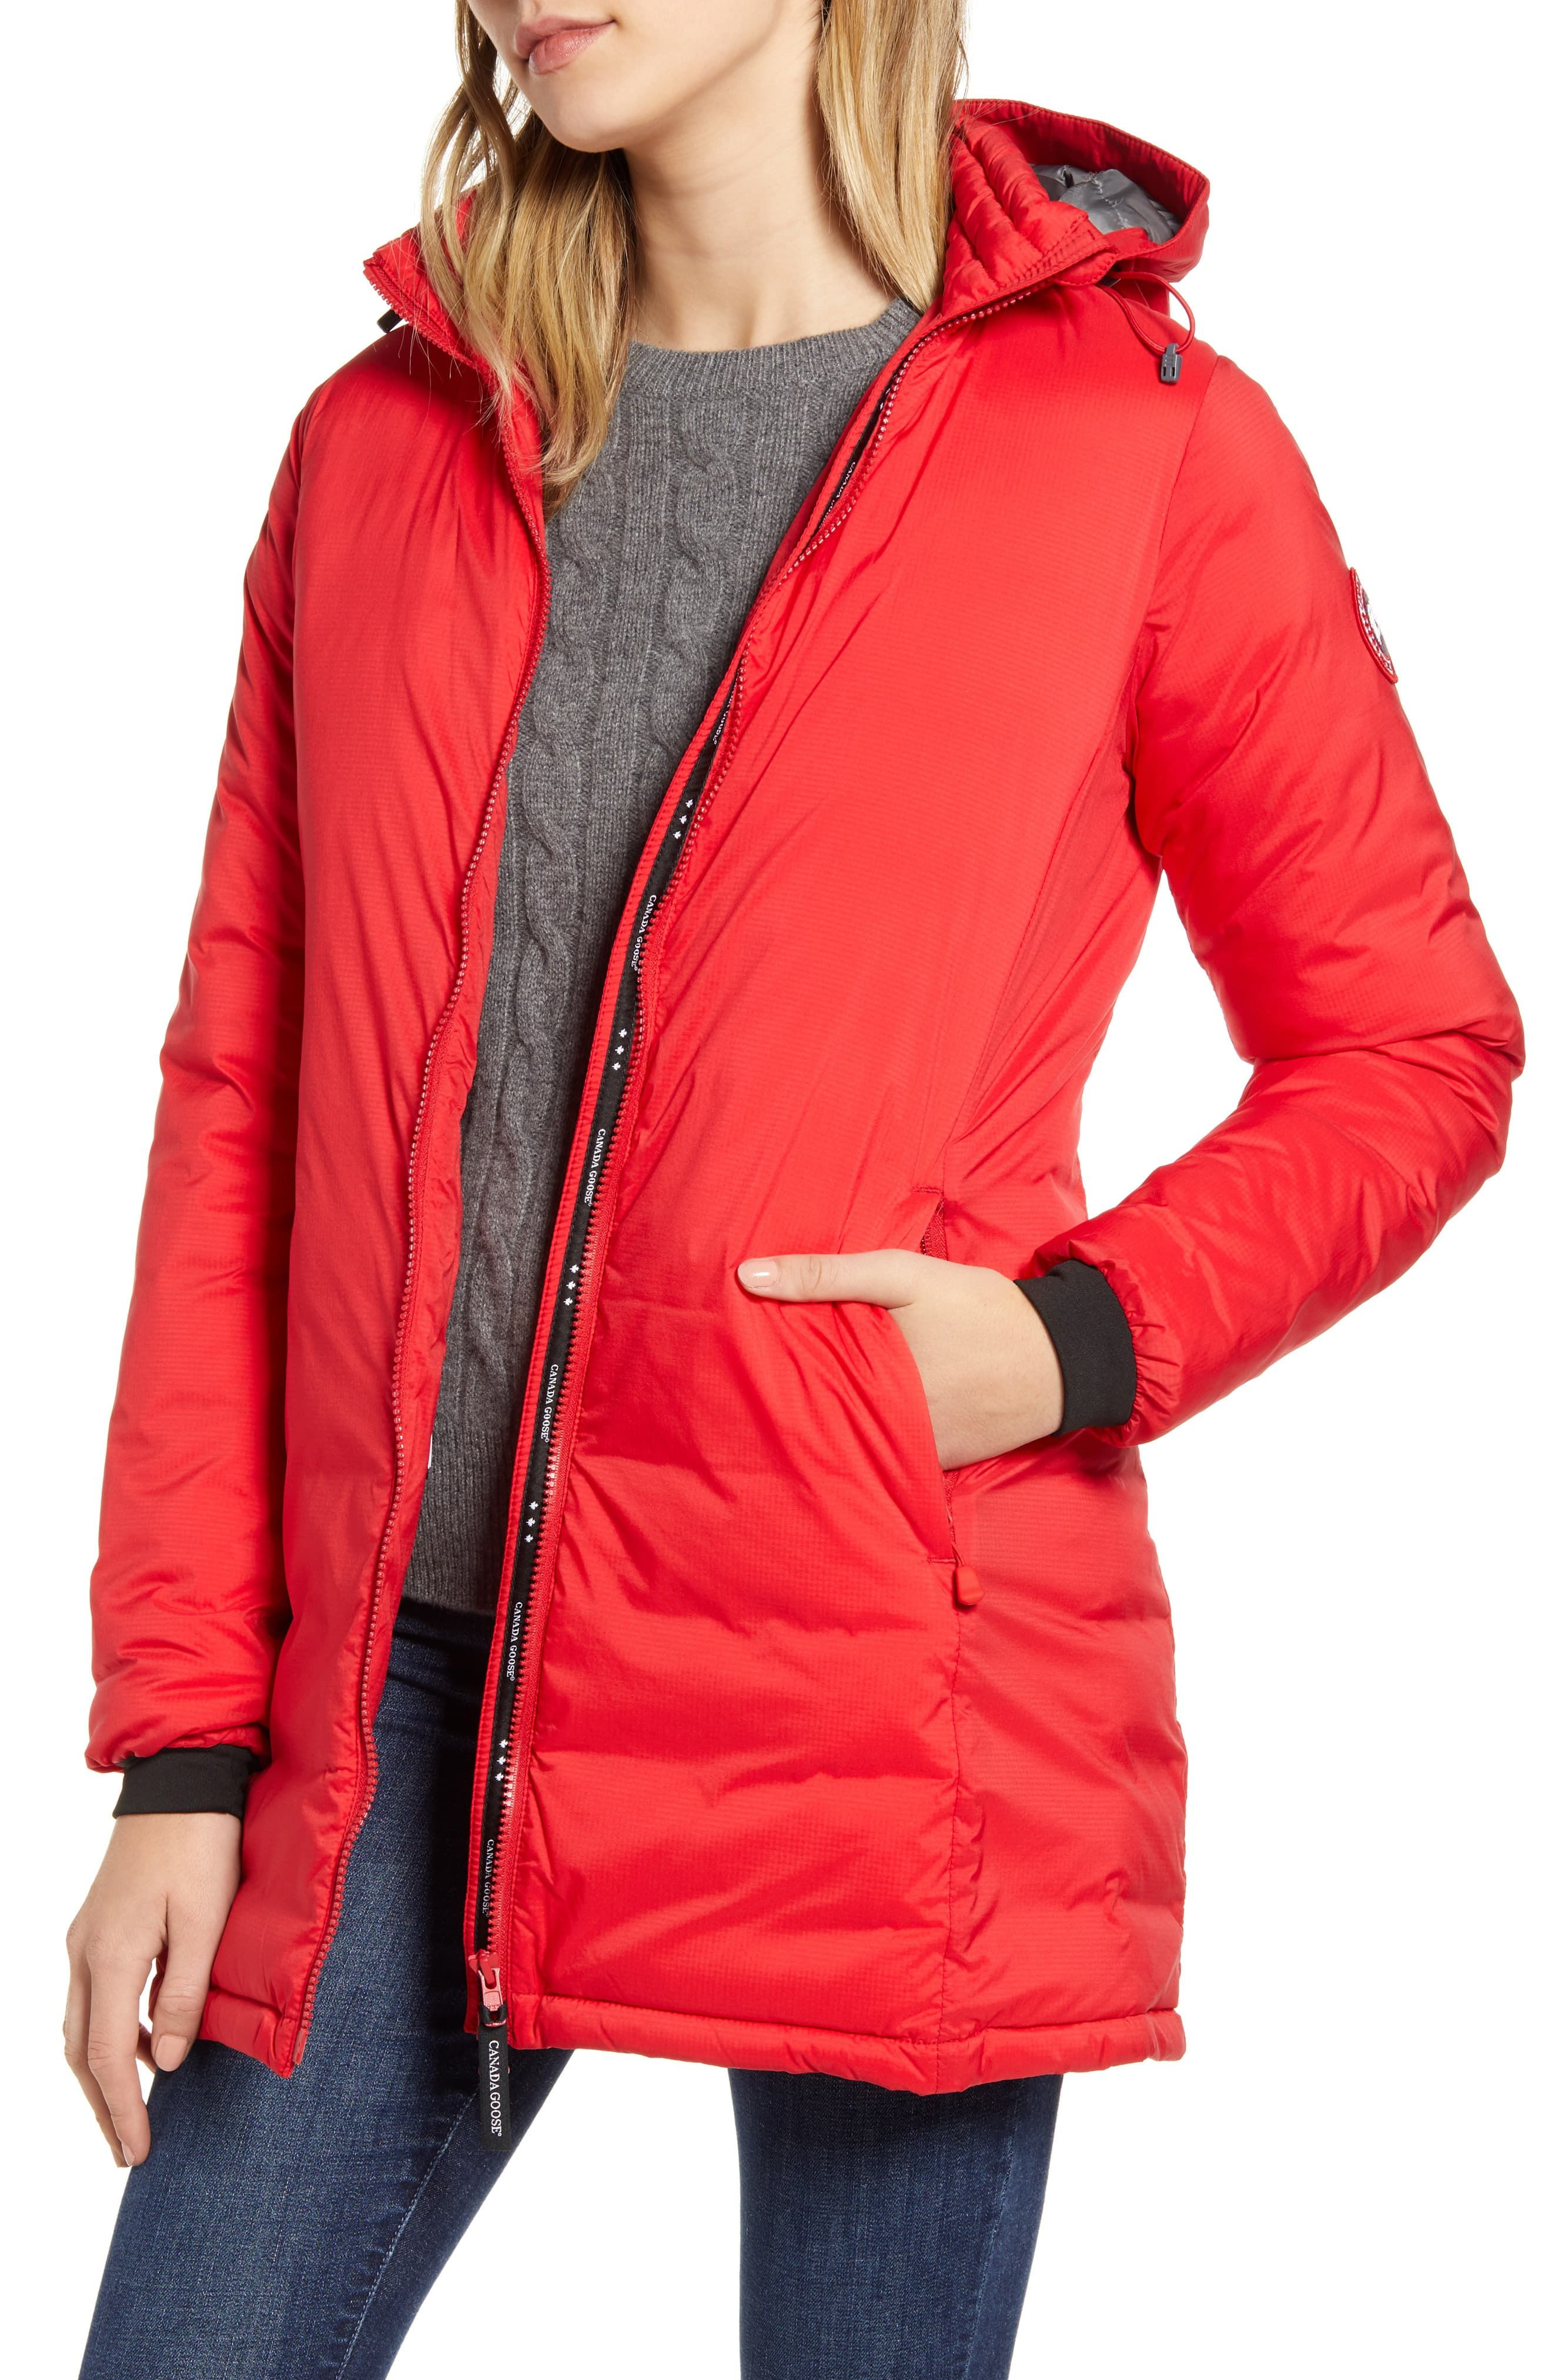 Women's Canada Goose Camp Hooded Down Jacket, Size Medium